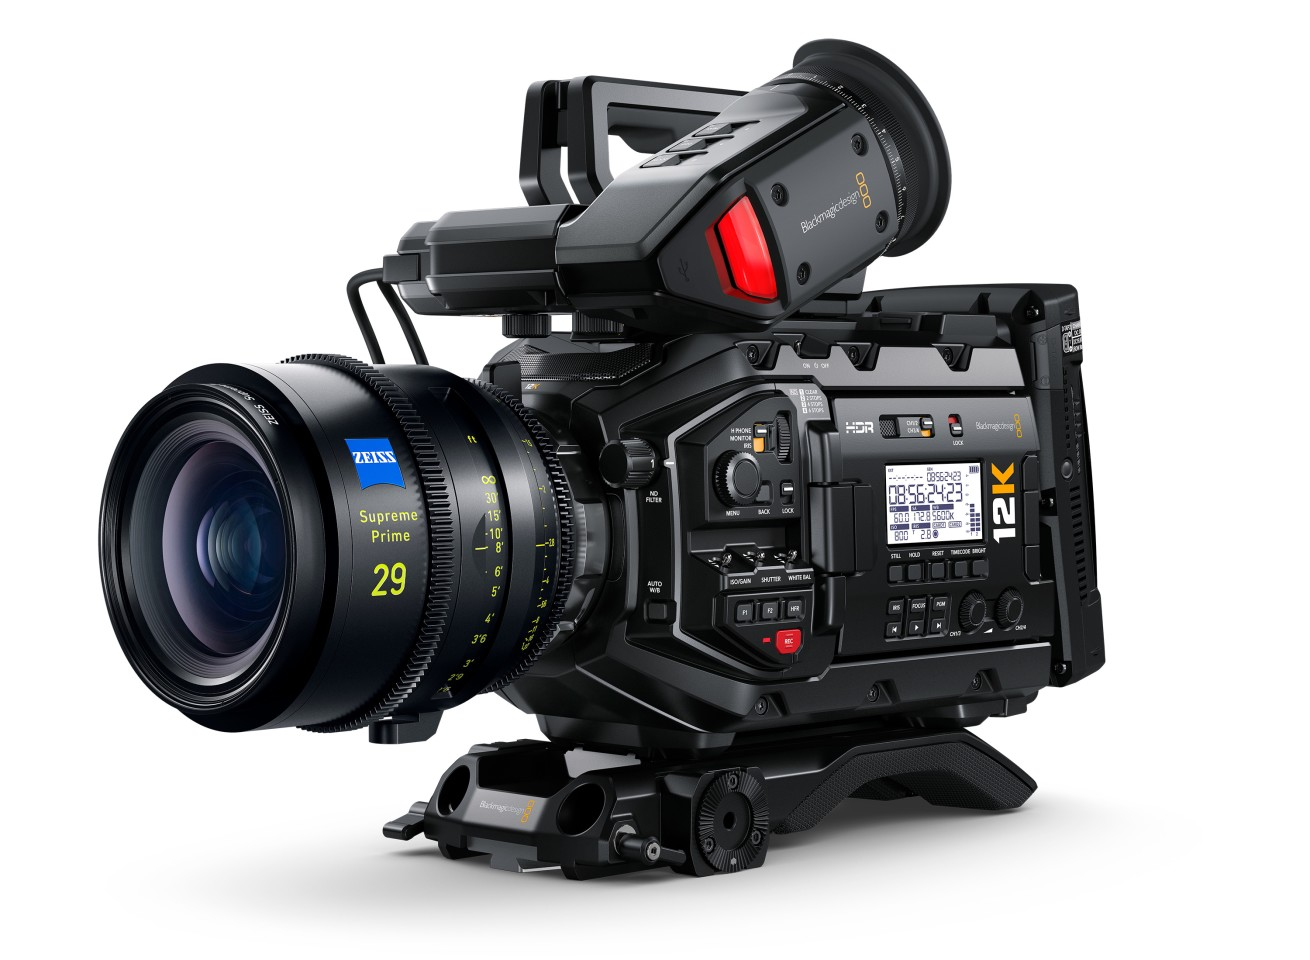 This US$10,000 monster shoots ludicrous resolutions and frame rates for high-end filmmaking